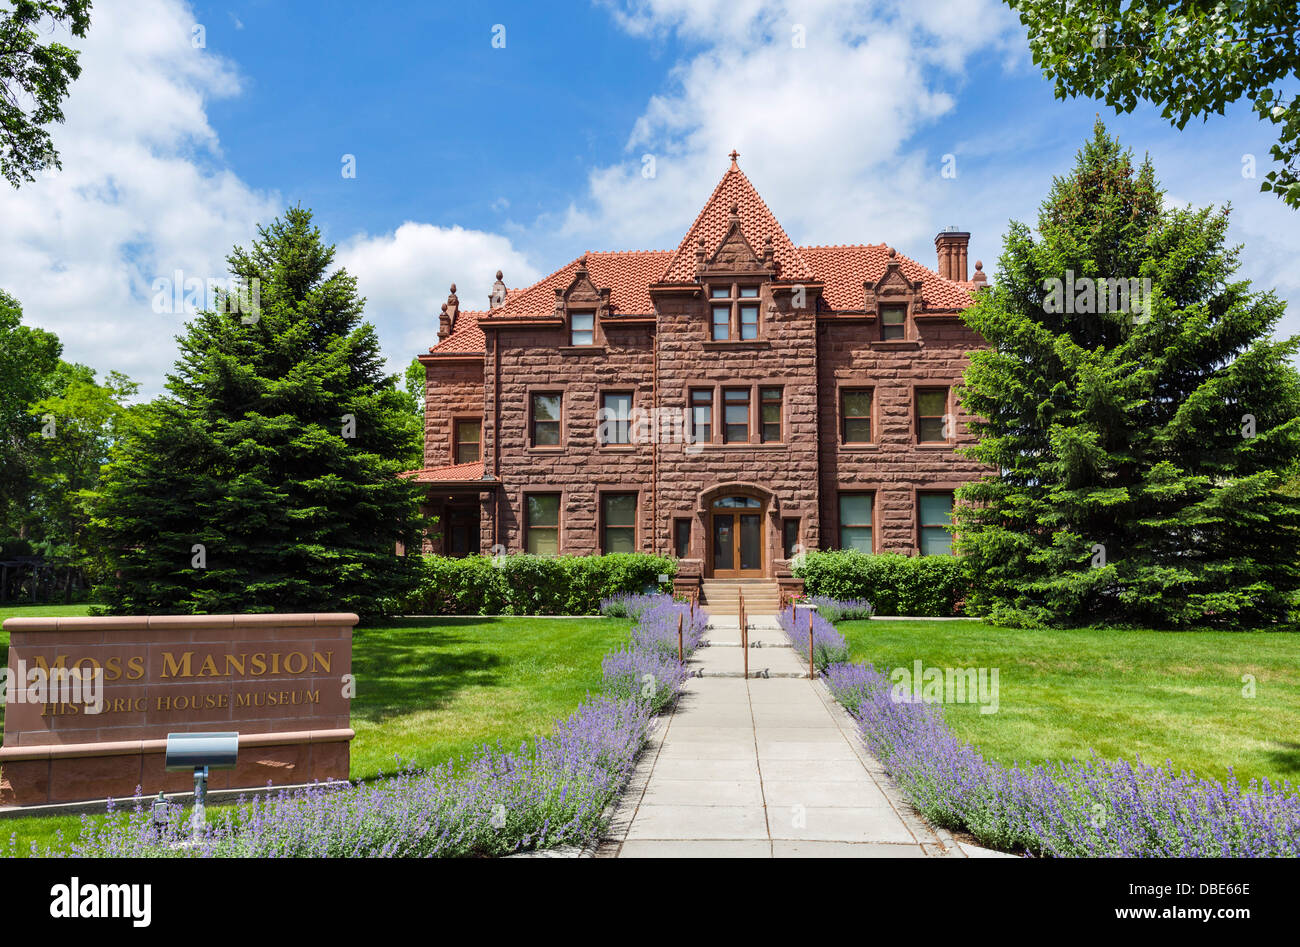 Moss Mansion Historic House Museum, Division Street, Billings, Montana, USA - Stock Image